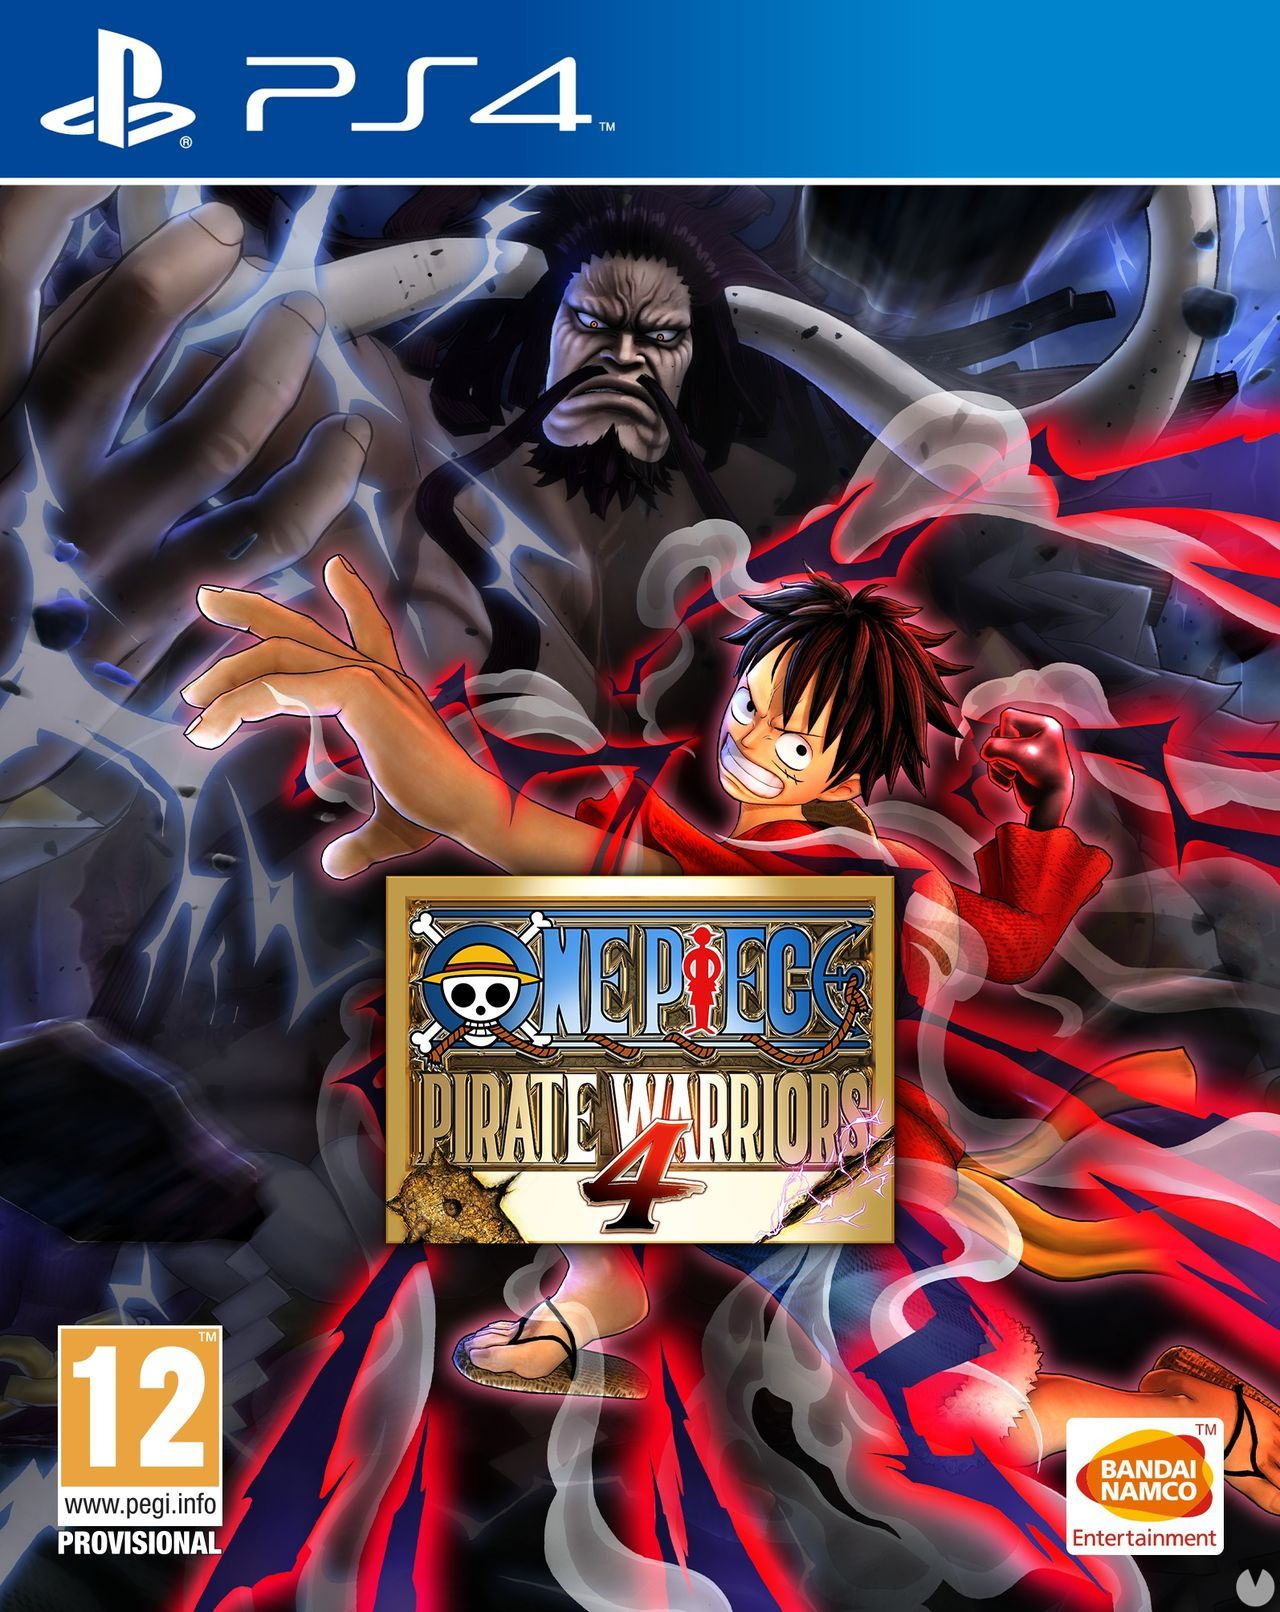 PIRATE WARRIORS ONE PIECE